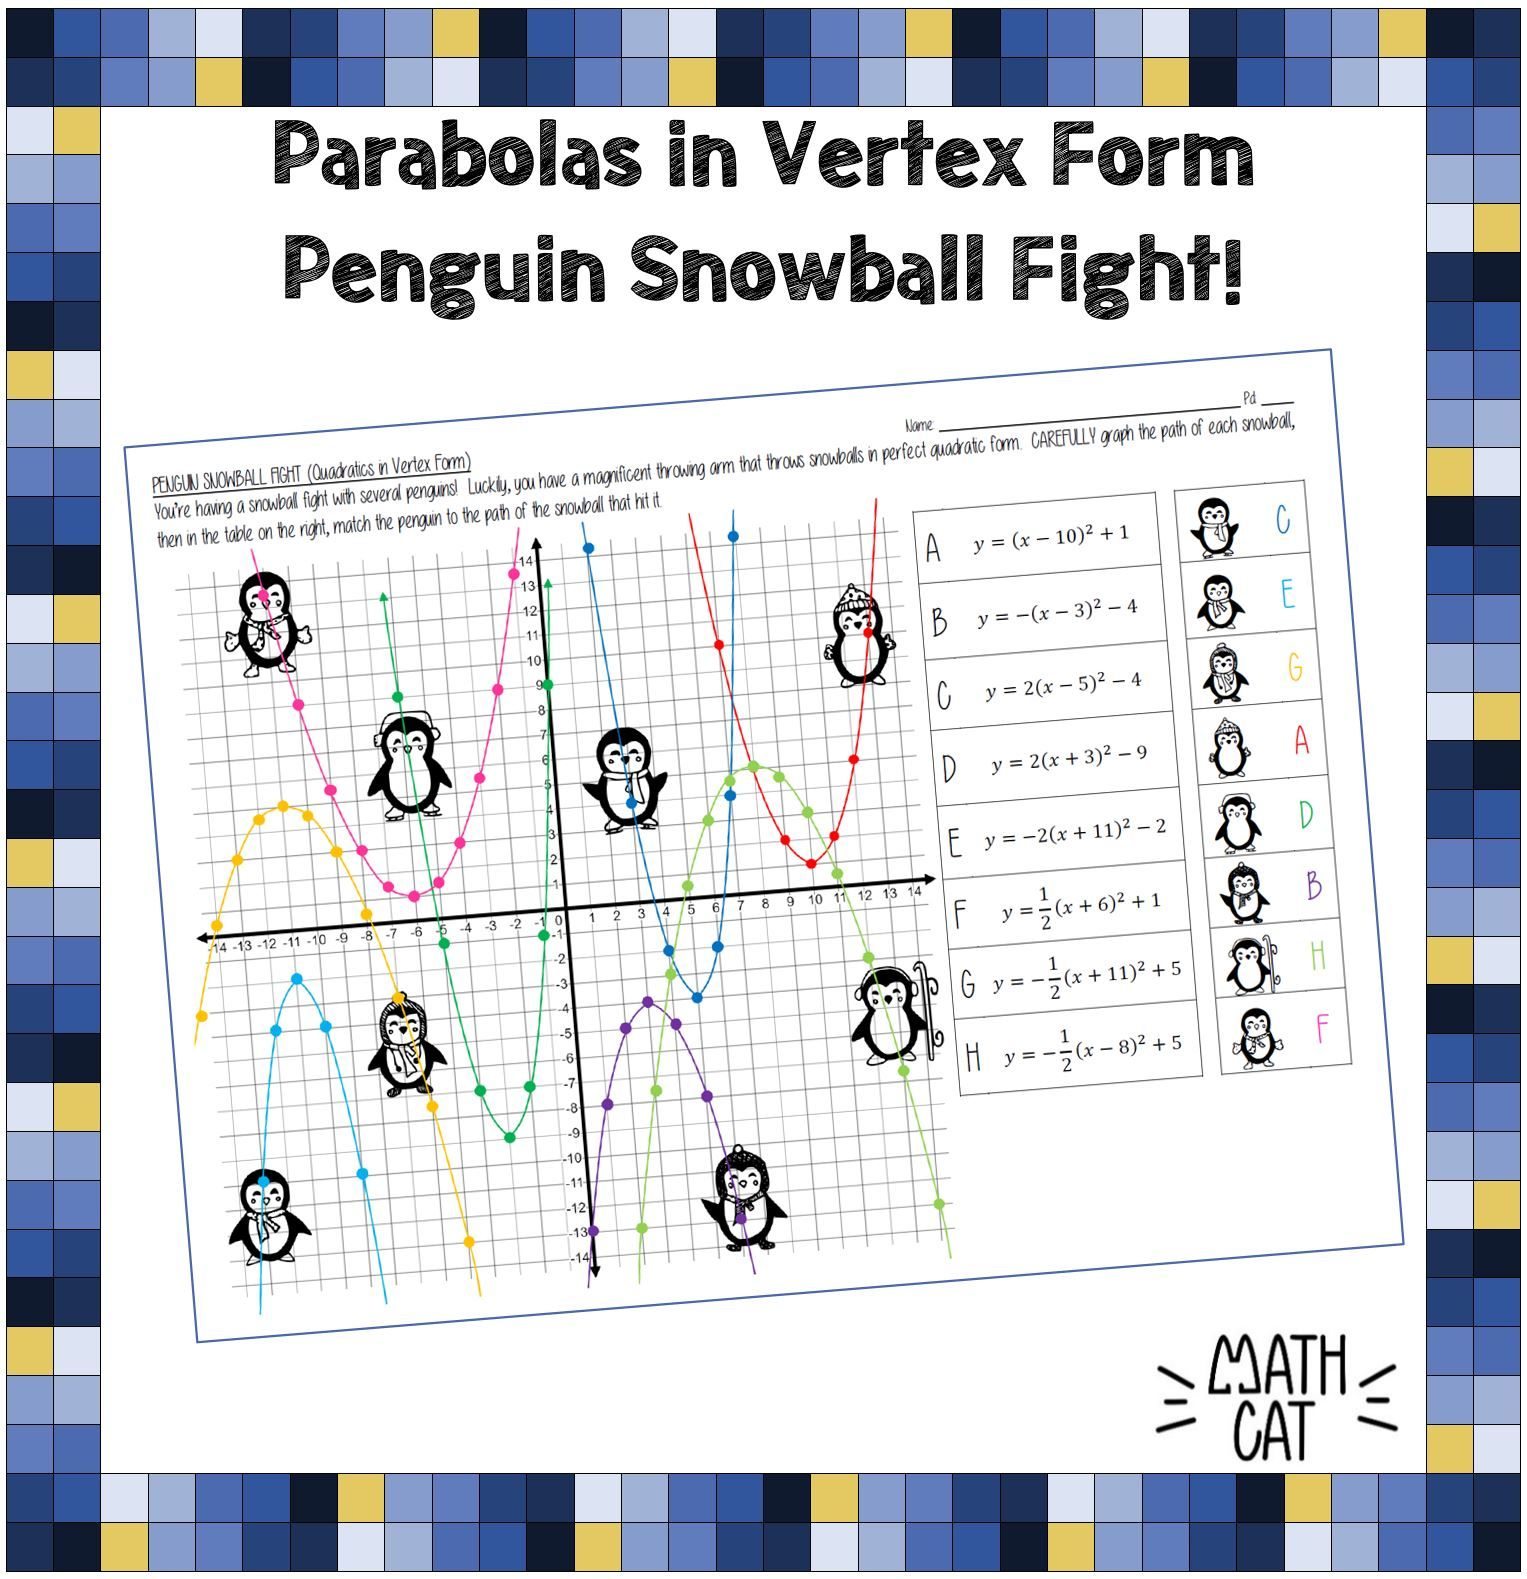 medium resolution of Penguin Snowball Fight! Graphing Parabolas in Vertex Form   Graphing  parabolas